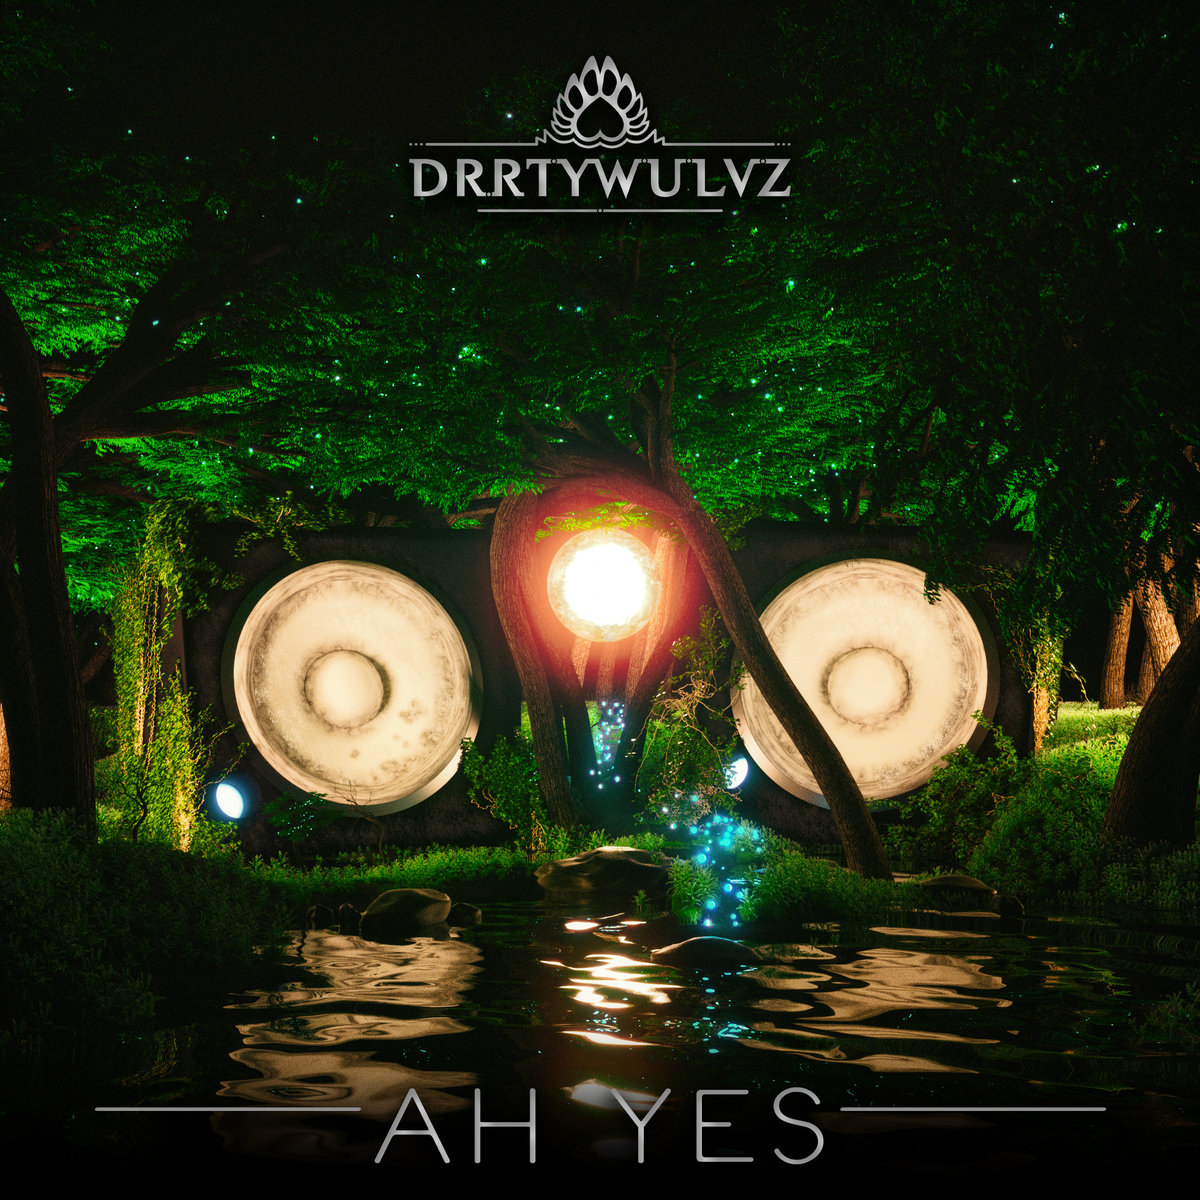 DRRTYWULVZ - Ah Yes (artwork)